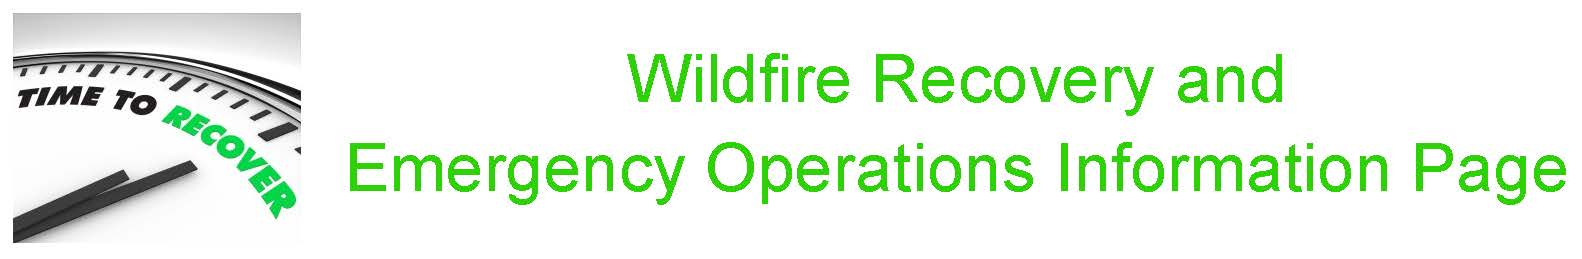 Wildfire Recovery Page Image